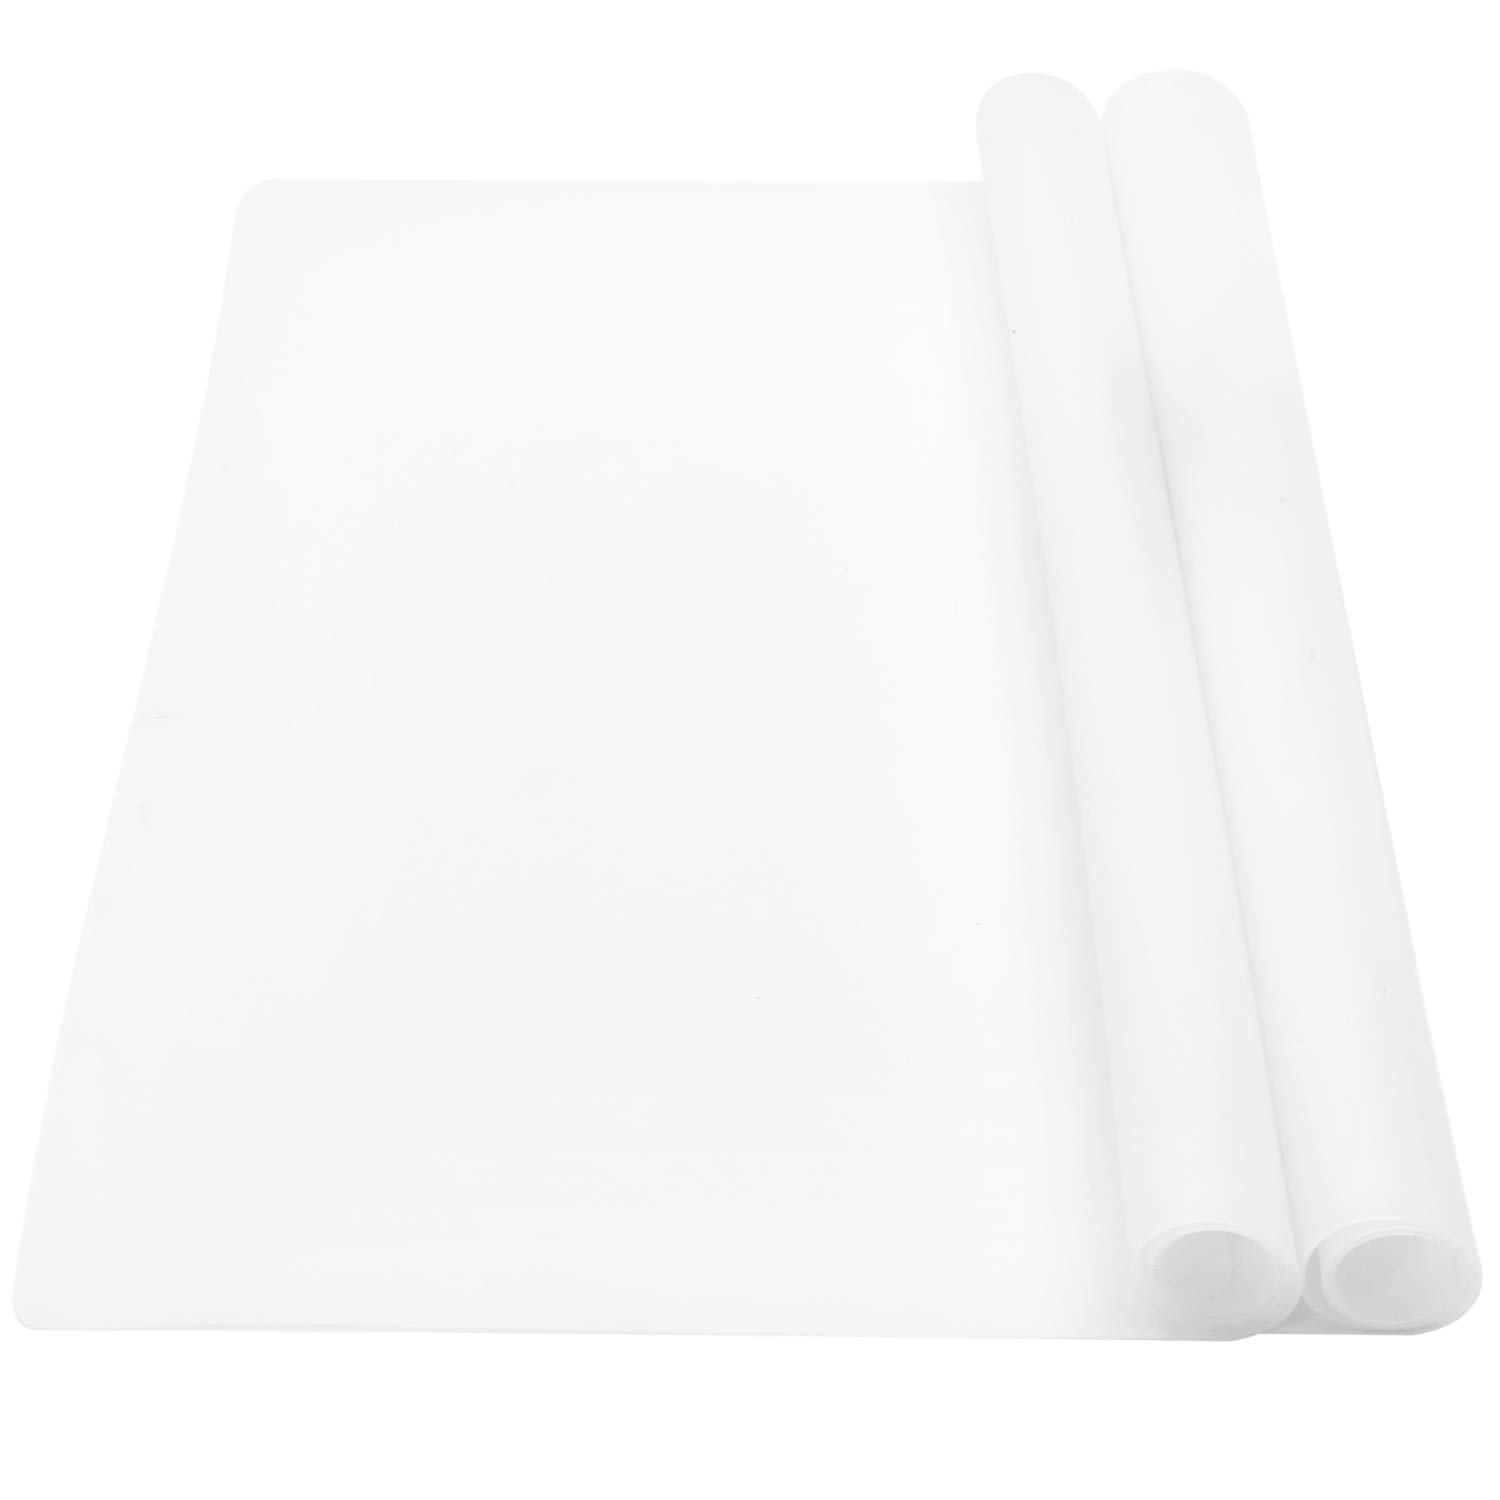 wellhouse 23.6'' by 15.7'' Extra Large Mulitpurpose Silicone Nonstick Pastry Mat Countertop Protector Heat Resistant Nonskid Table Mat Set of 2 (Translucent)